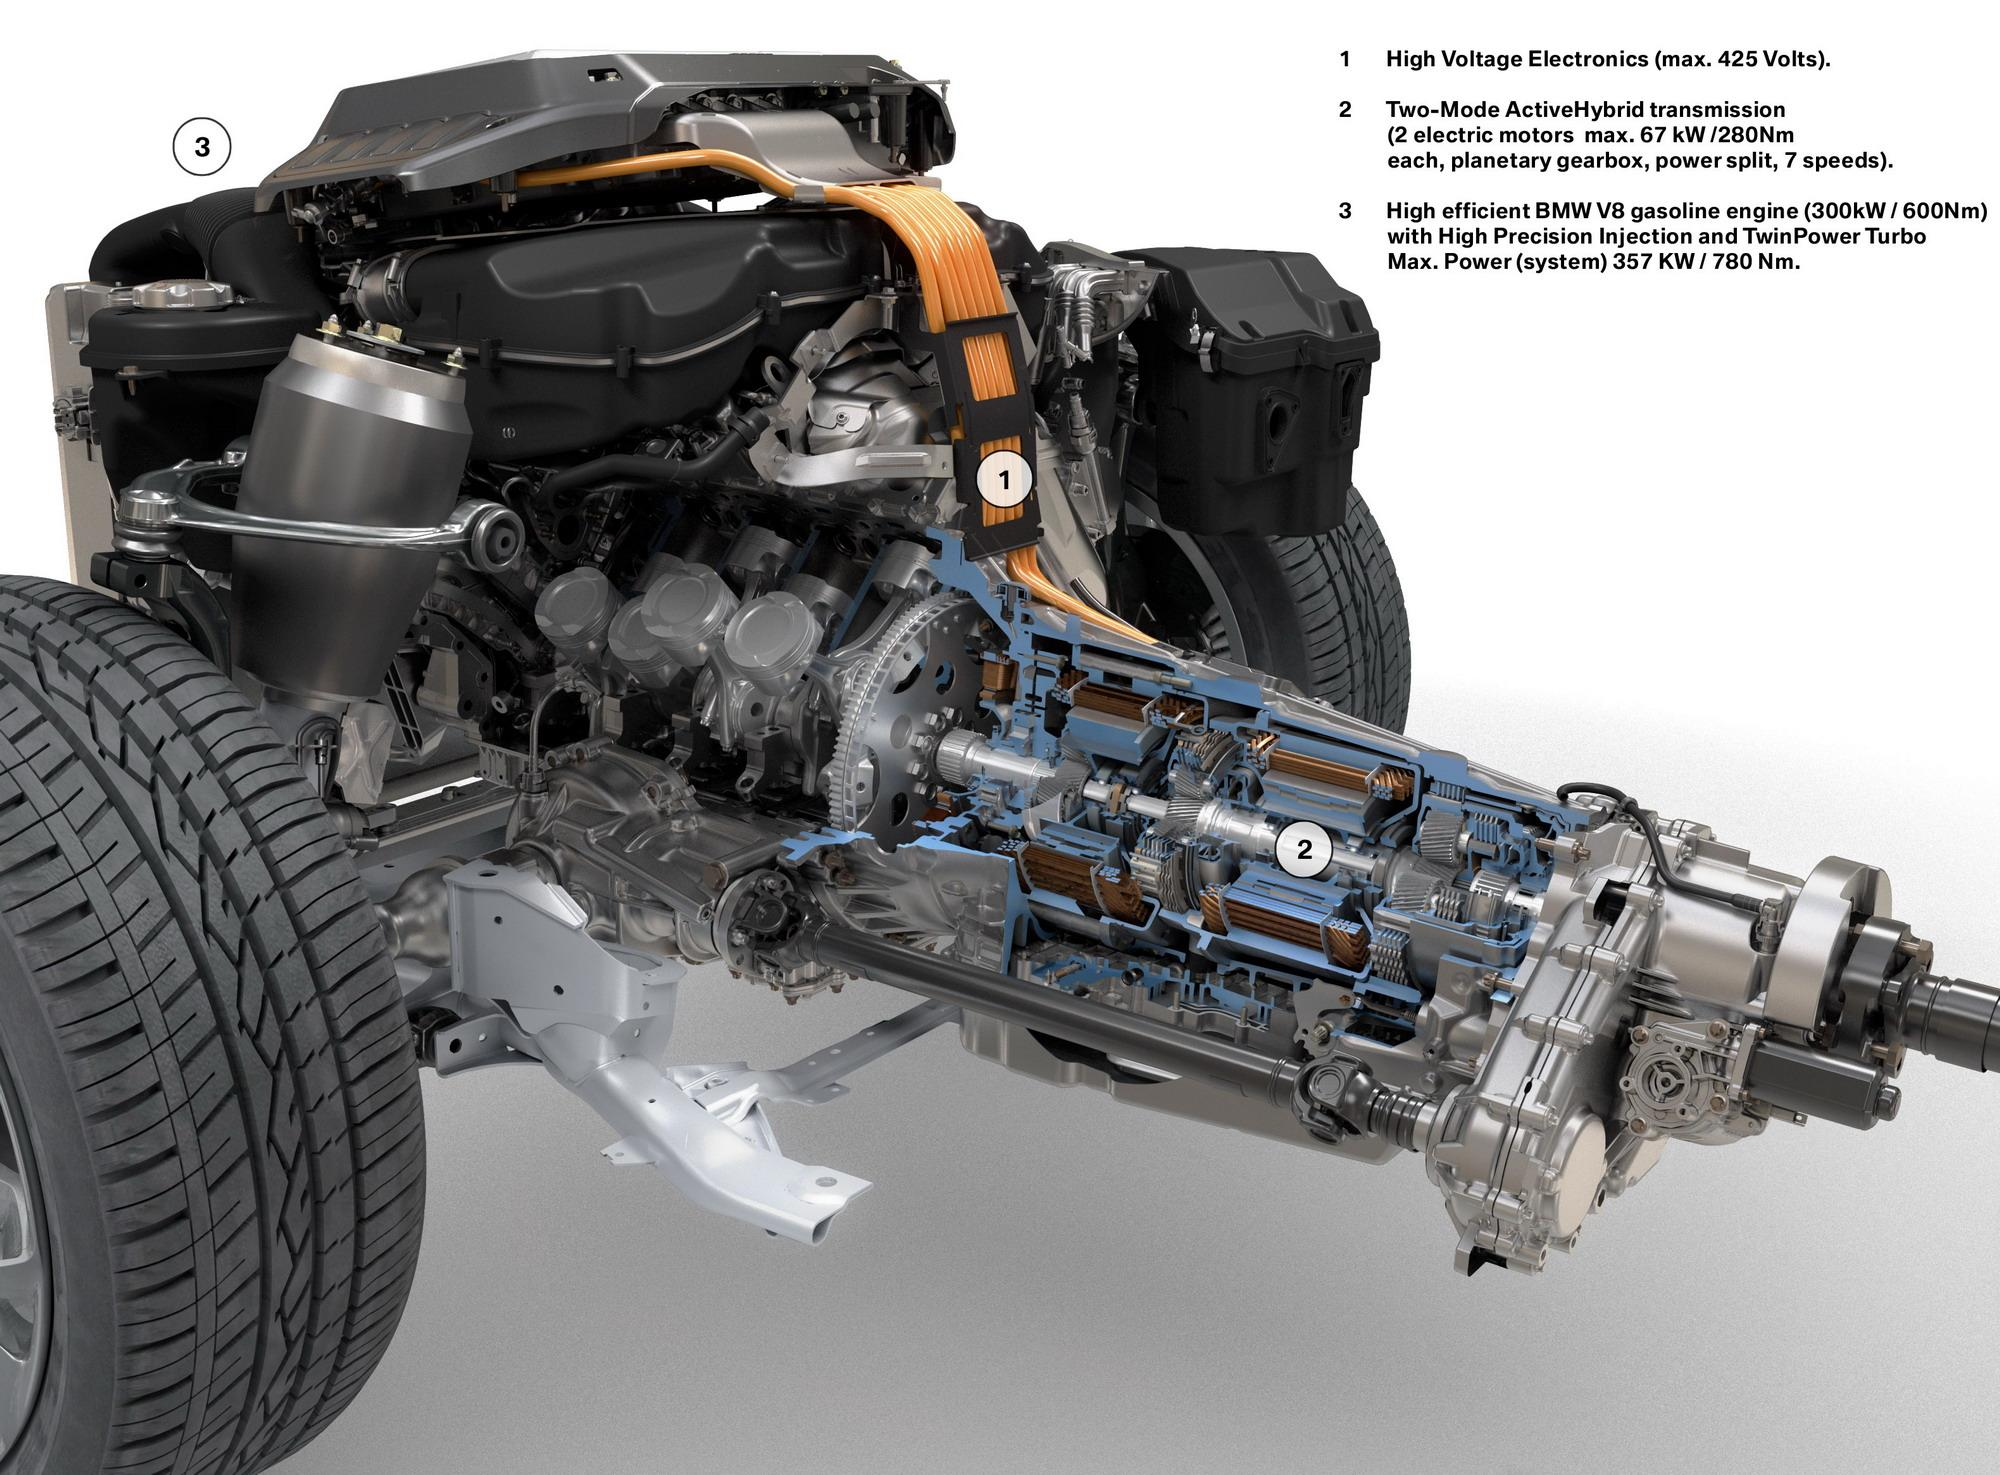 Bmw Activehybrid X6 Automatic Transmission And Electric Motor Opto 22 Relay Wiring Diagram 2010 Top Speed